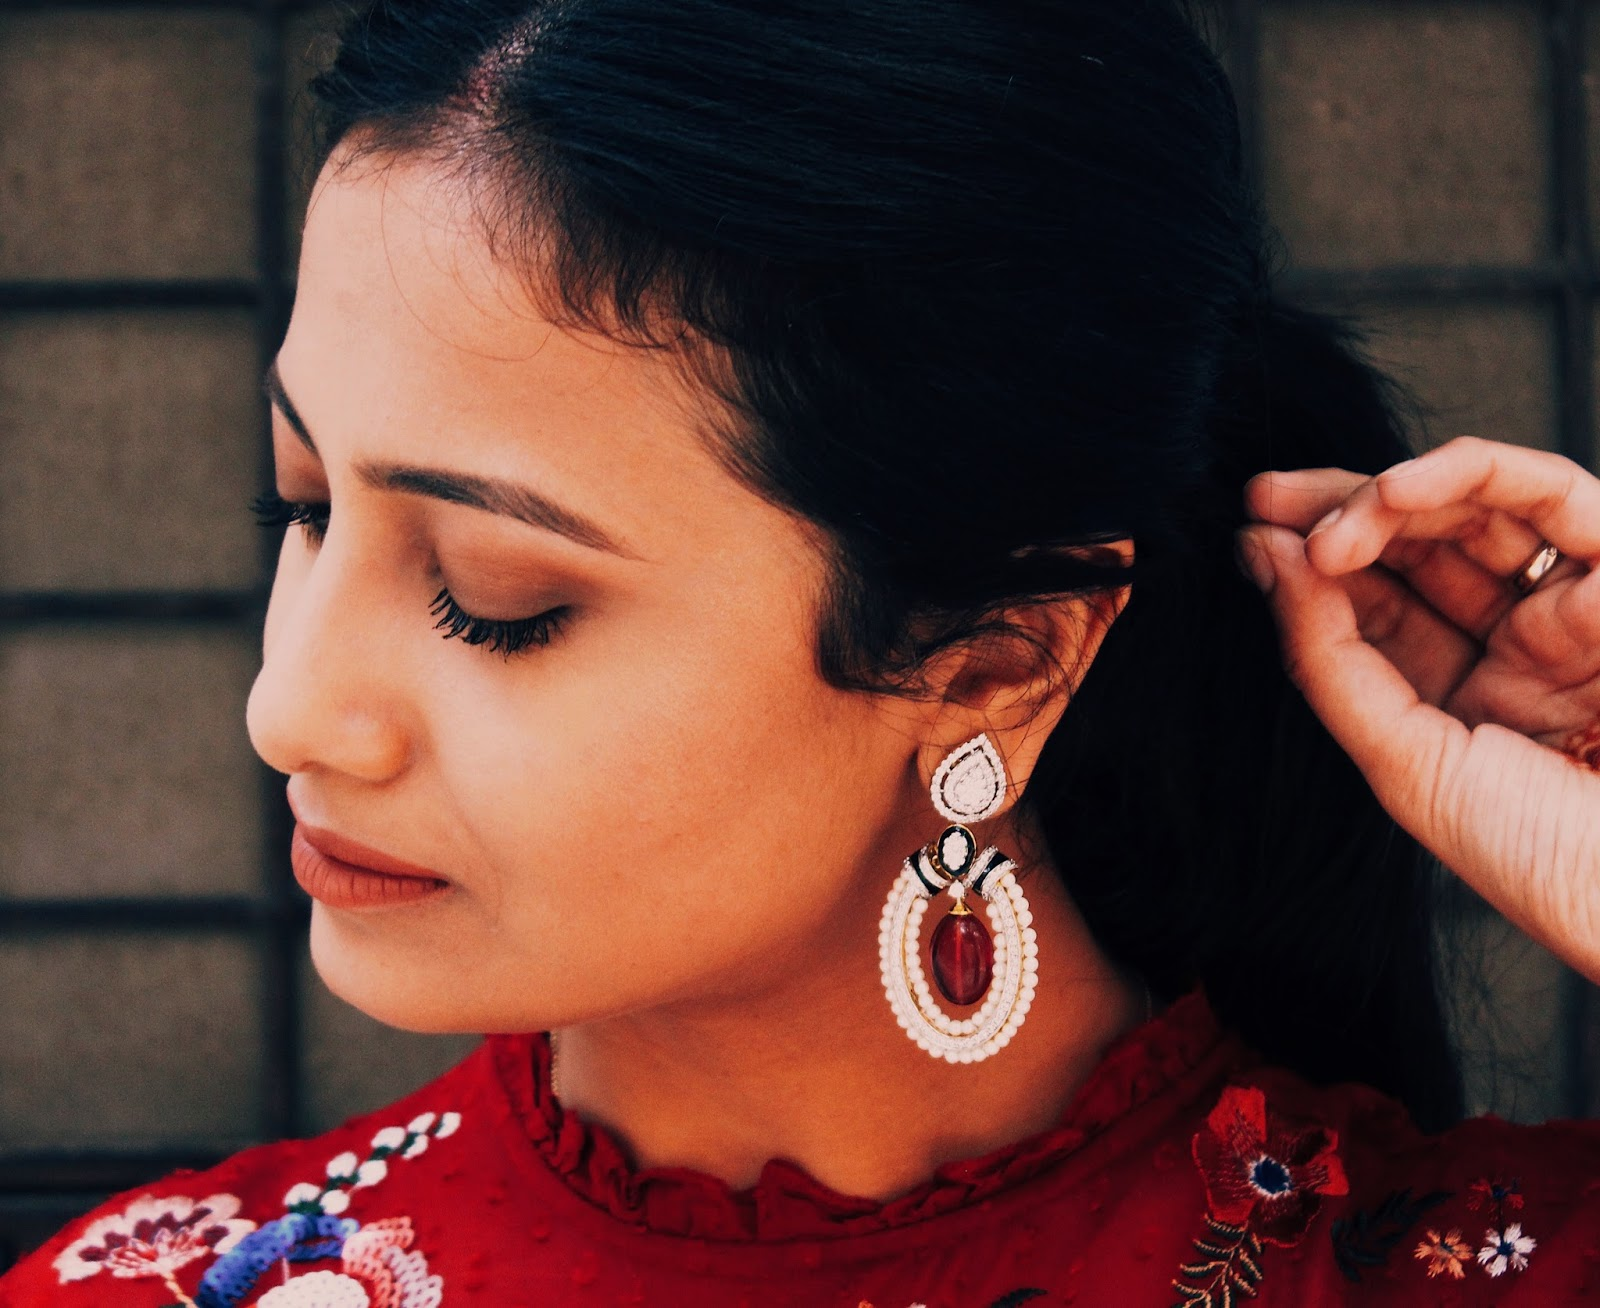 diwali party outfit, red dress, embroidered, tsara, tsara earrings, TSARA review, indian blog, indian fashion blogger, uk blog, zara red dress, earrings, chandelier earrings, silver earrings, destination jewellery